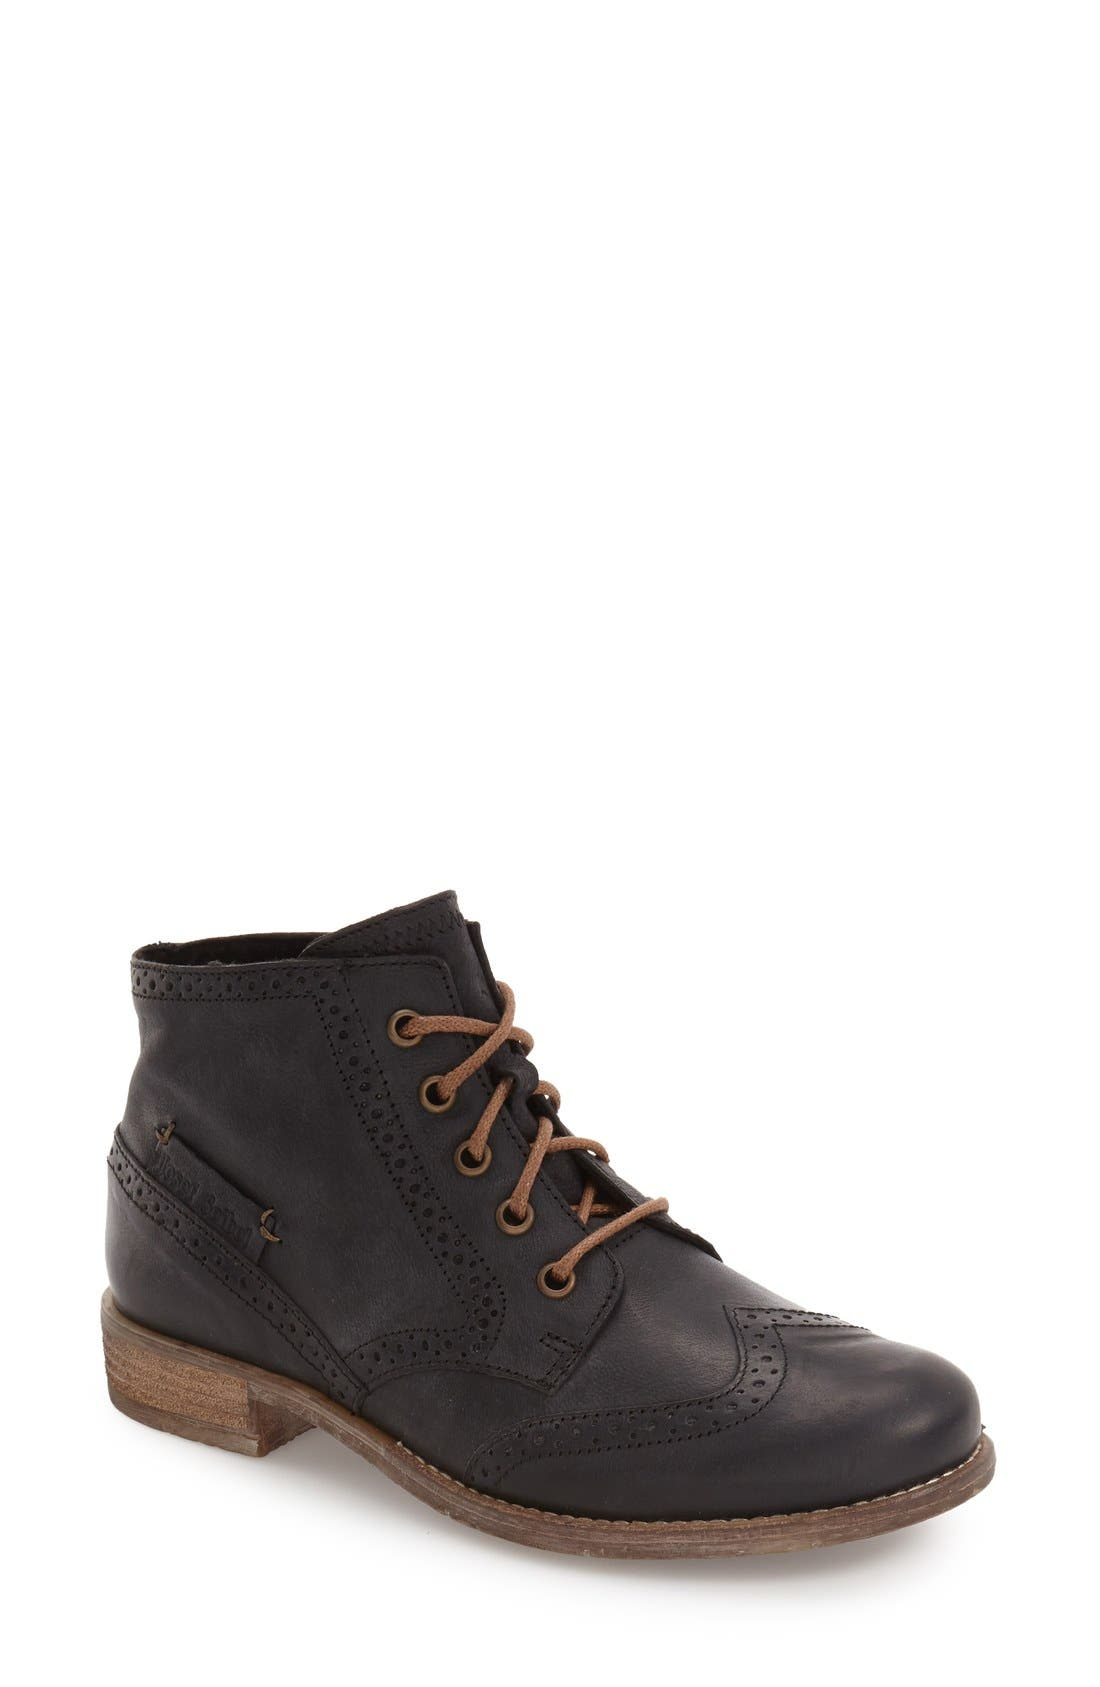 'Sienna 15' Wingtip Bootie,                             Main thumbnail 1, color,                             008